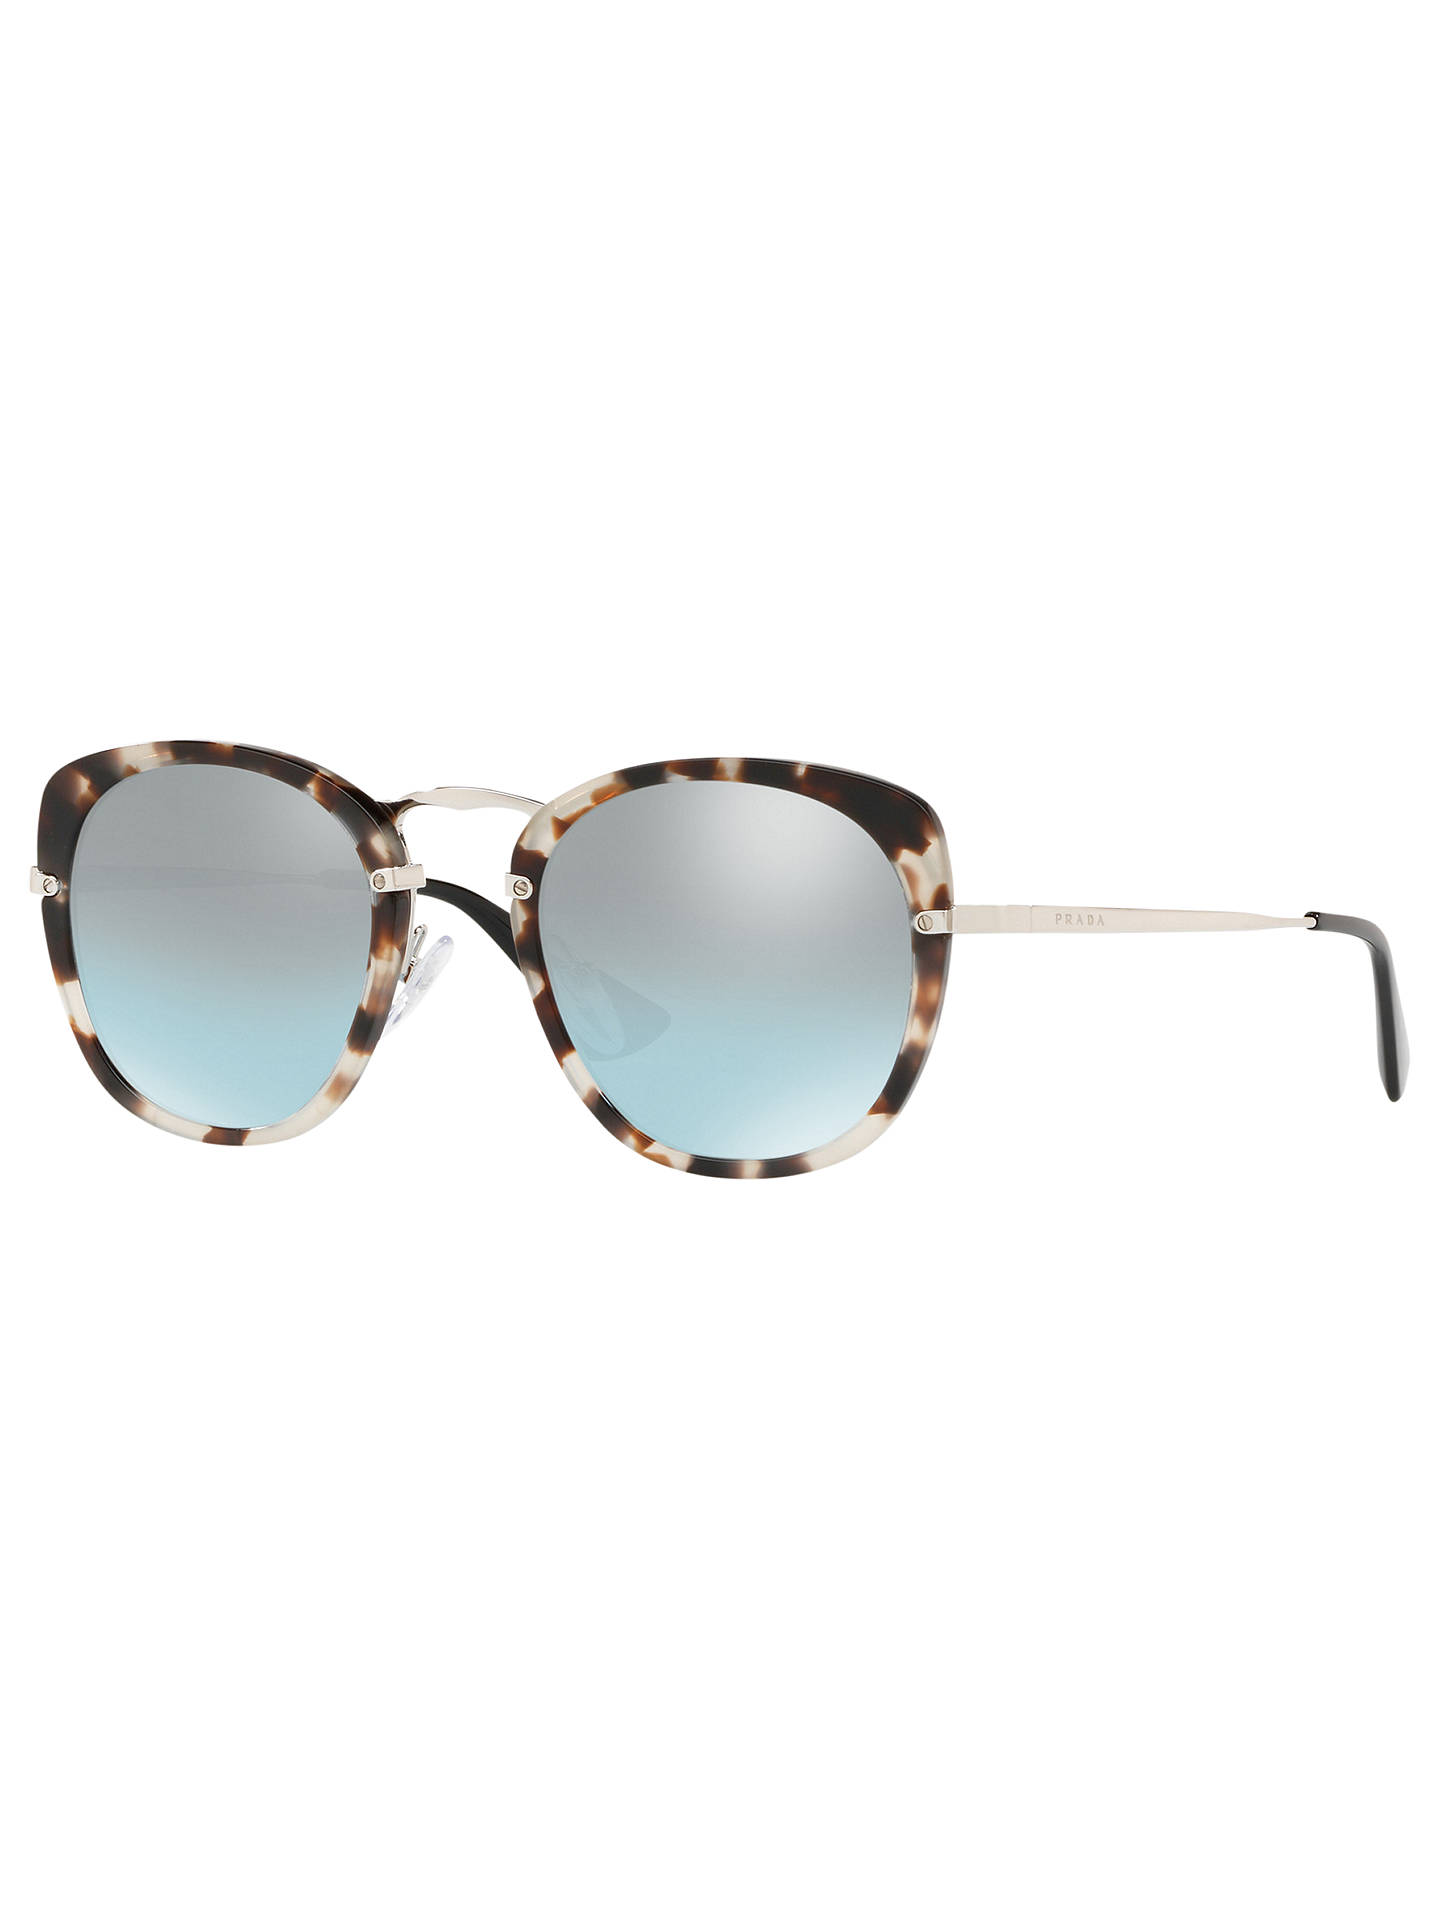 06c082feed Prada 58US Women s Round Sunglasses at John Lewis   Partners